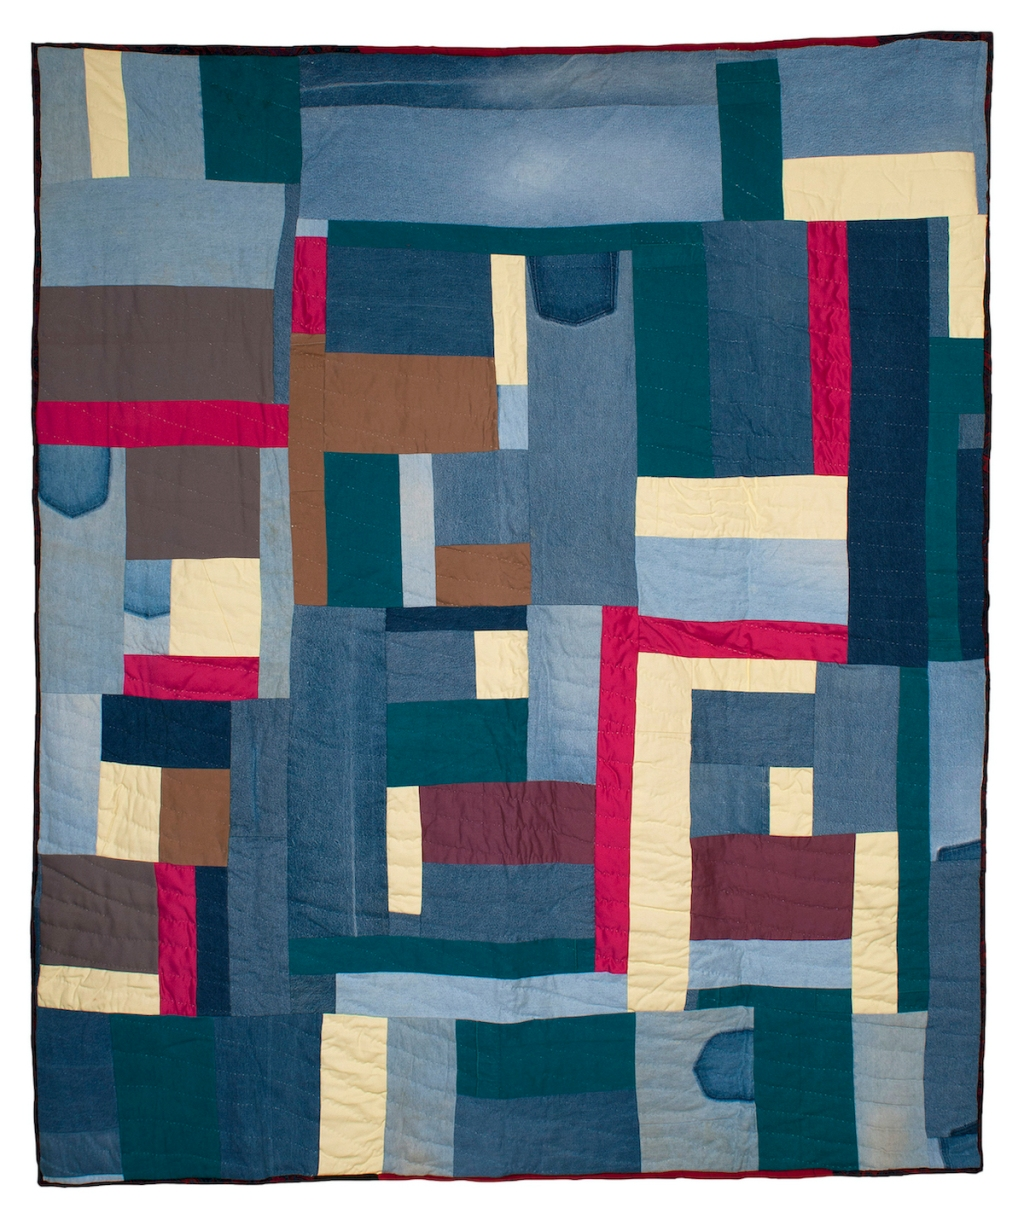 ARTnews in Brief: Nicelle Beauchene Gallery Adds Gee's Bend Quiltmakers to Roster—and More from October 26, 2020